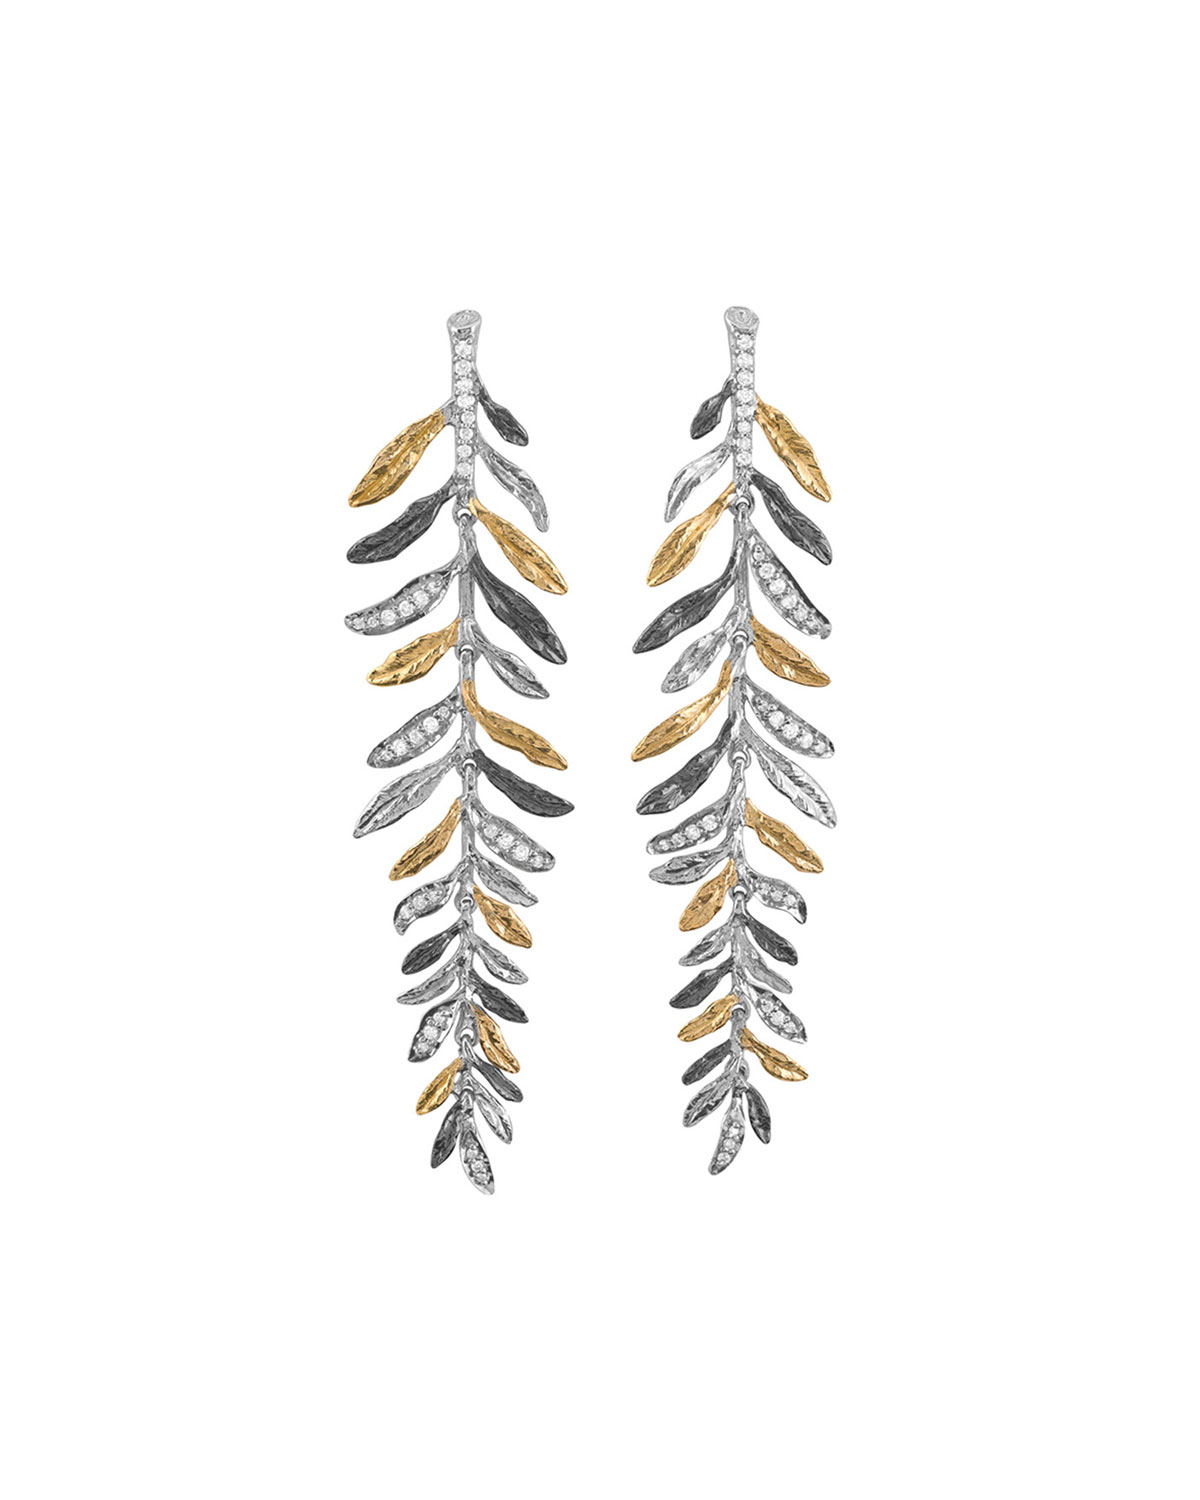 Michael Aram Laurel Tricolor Chandelier Earrings w/ Diamonds